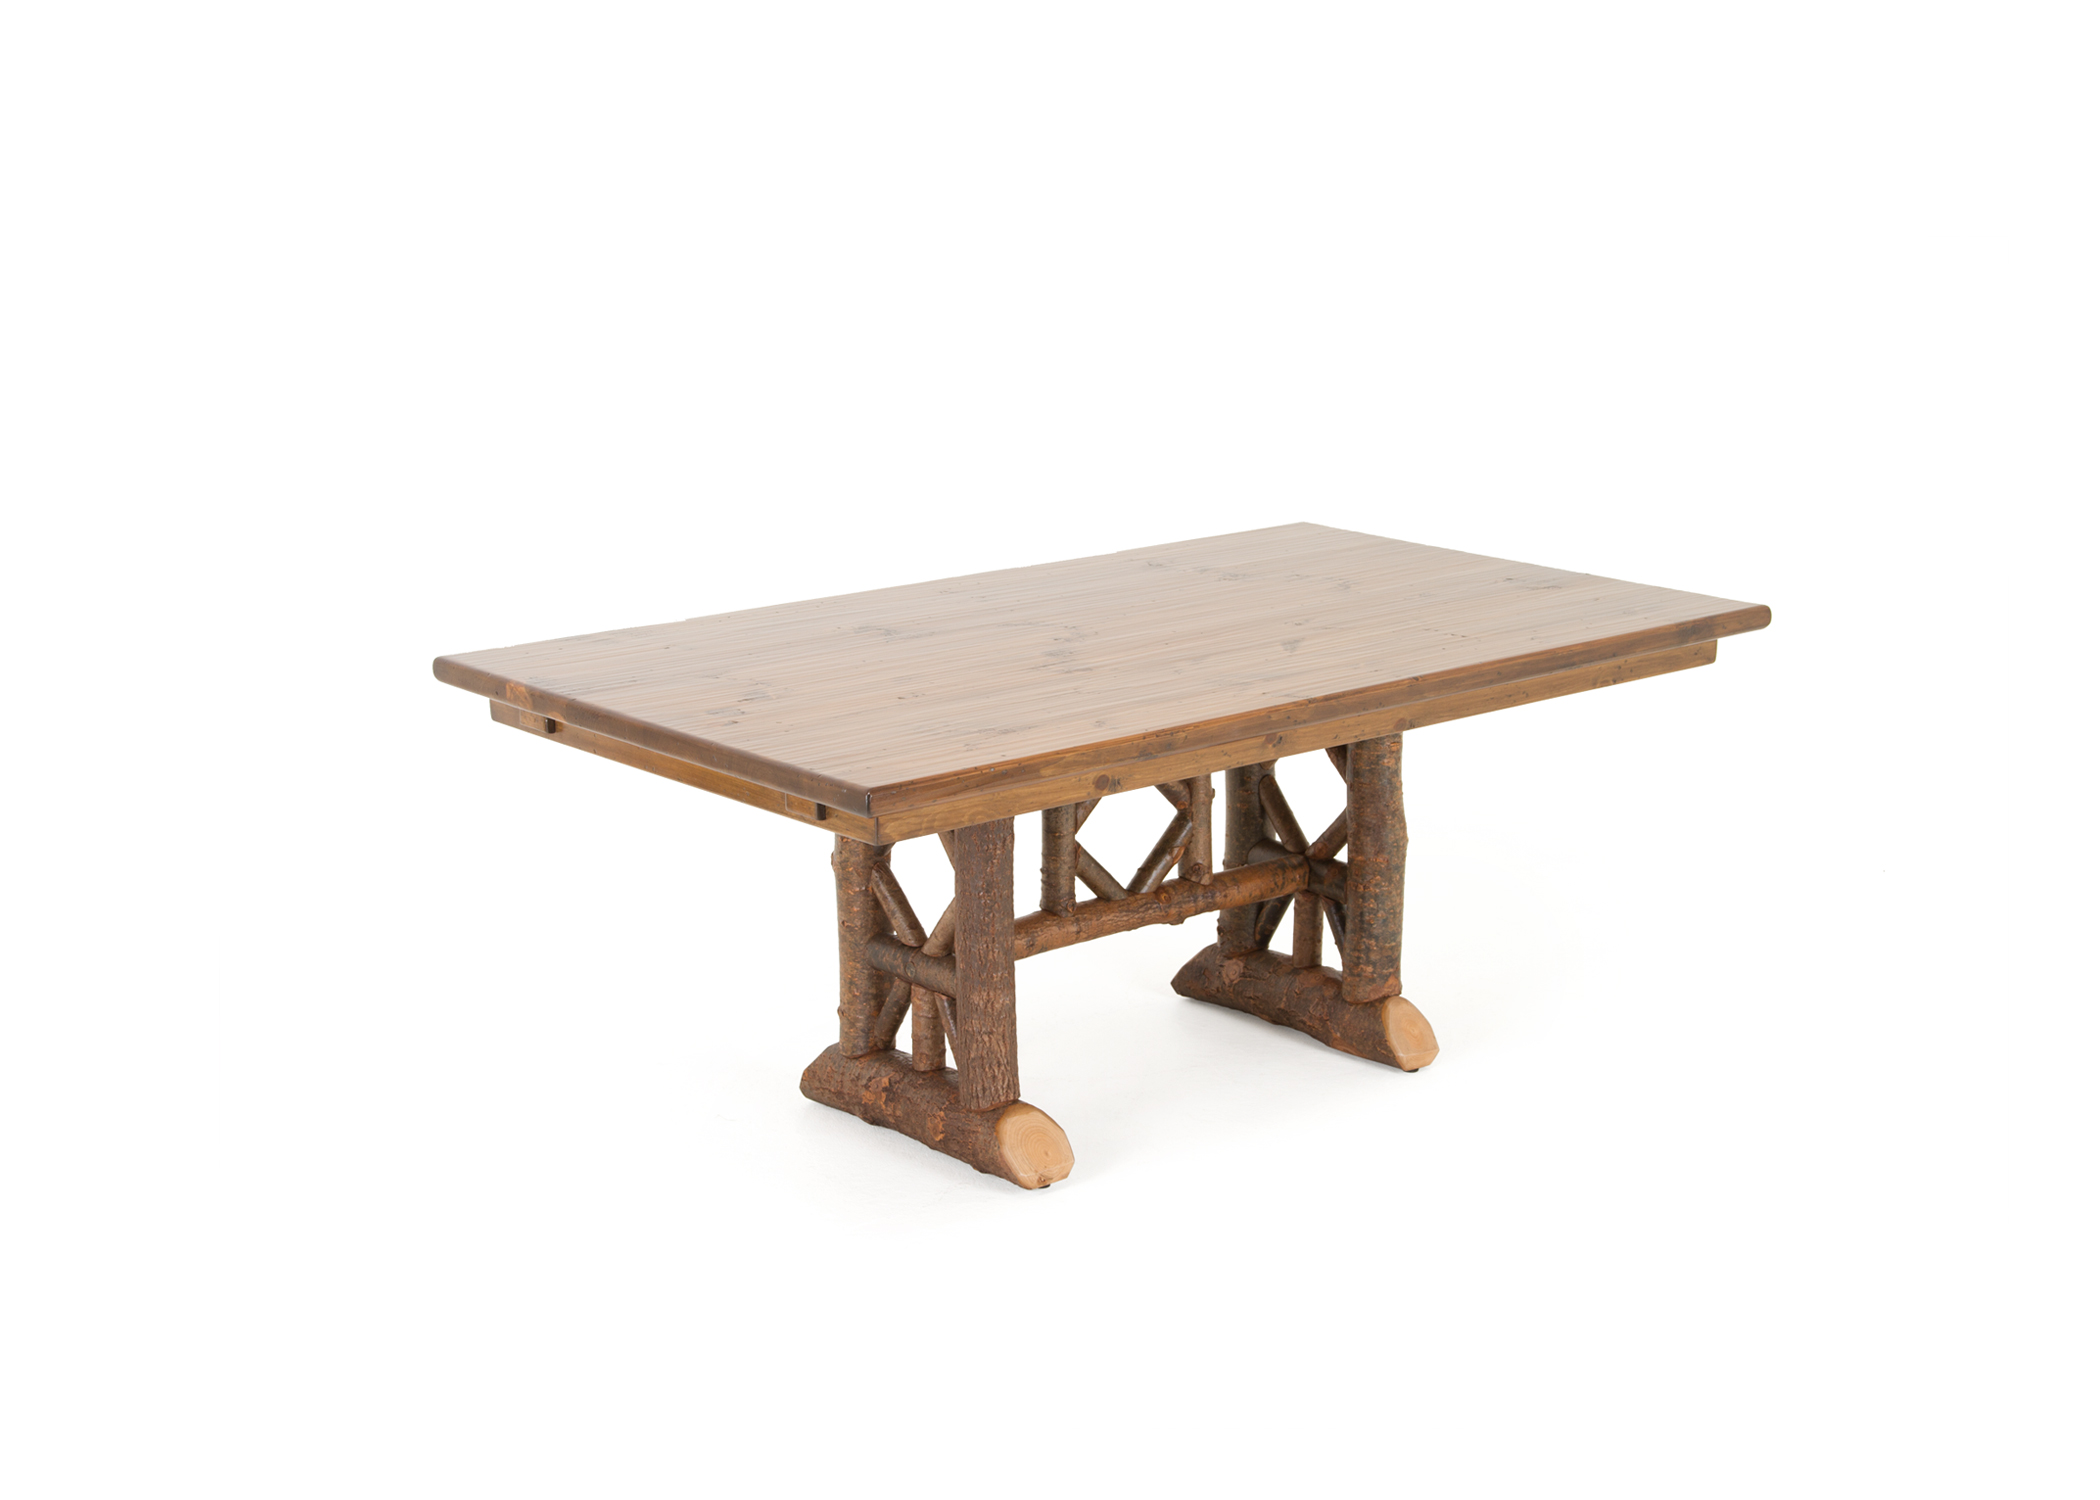 3119-Custom-Table-1-La-Lune-Collection-Rustic-Furniture